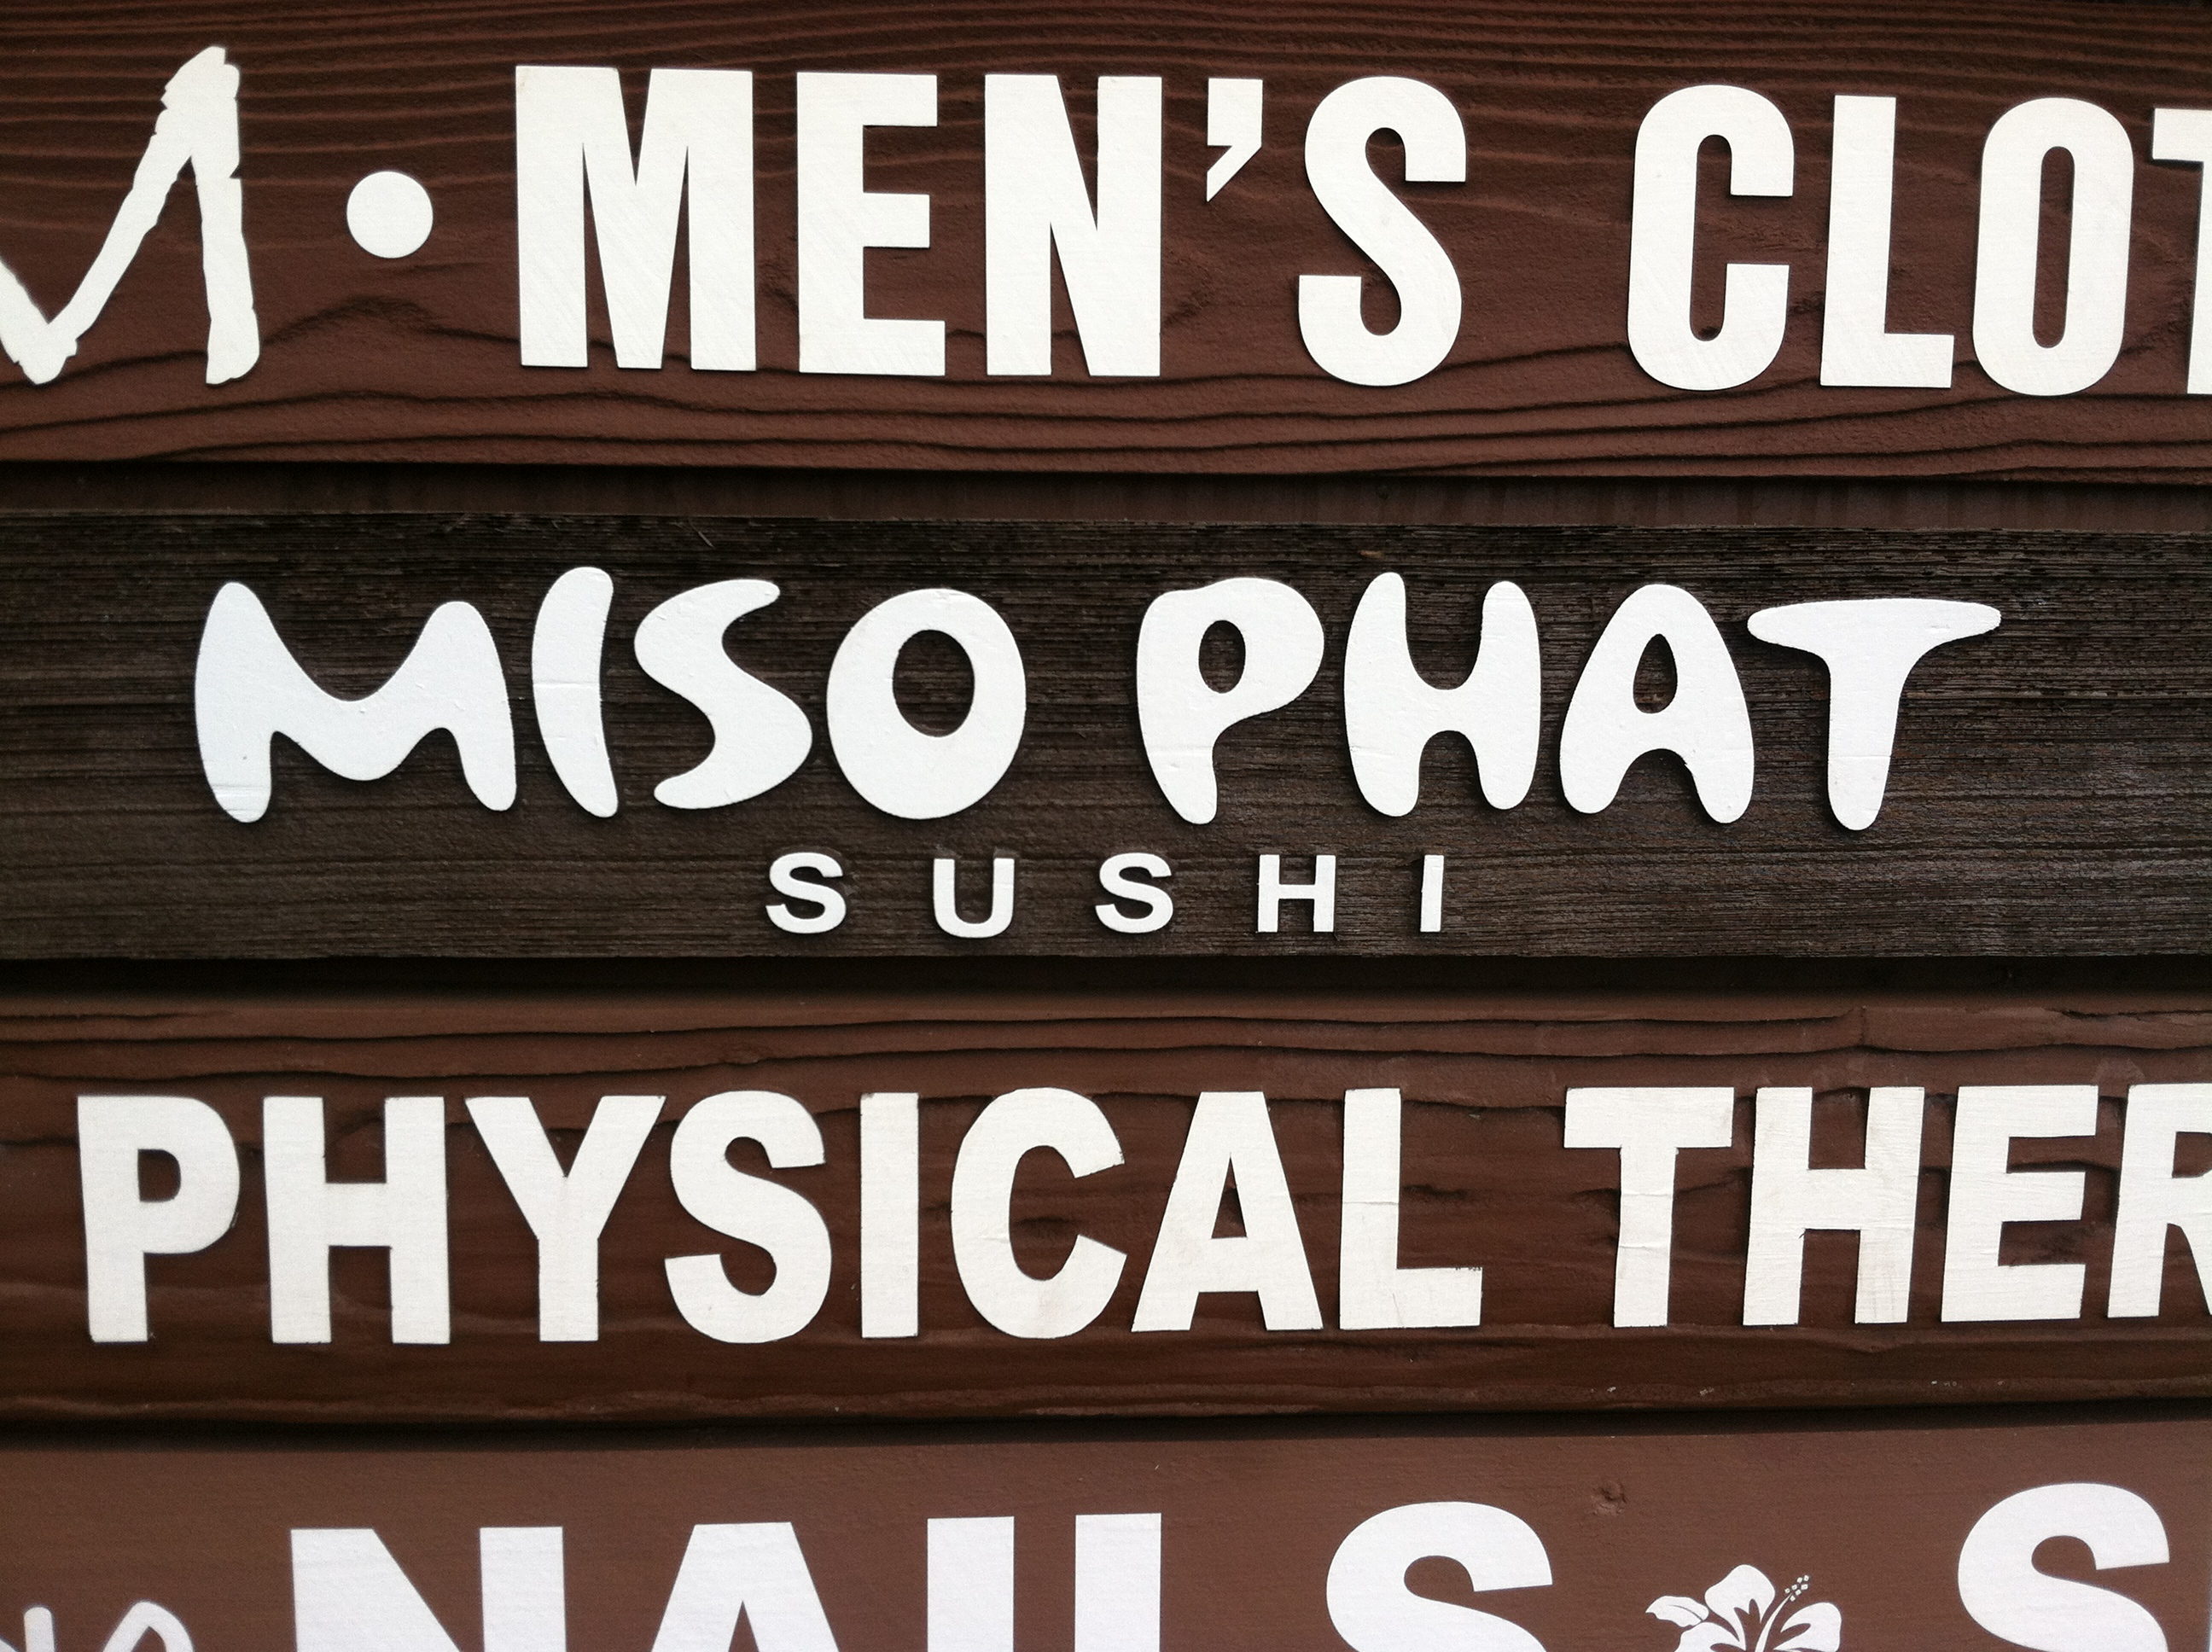 Clever name for a sushi joint.